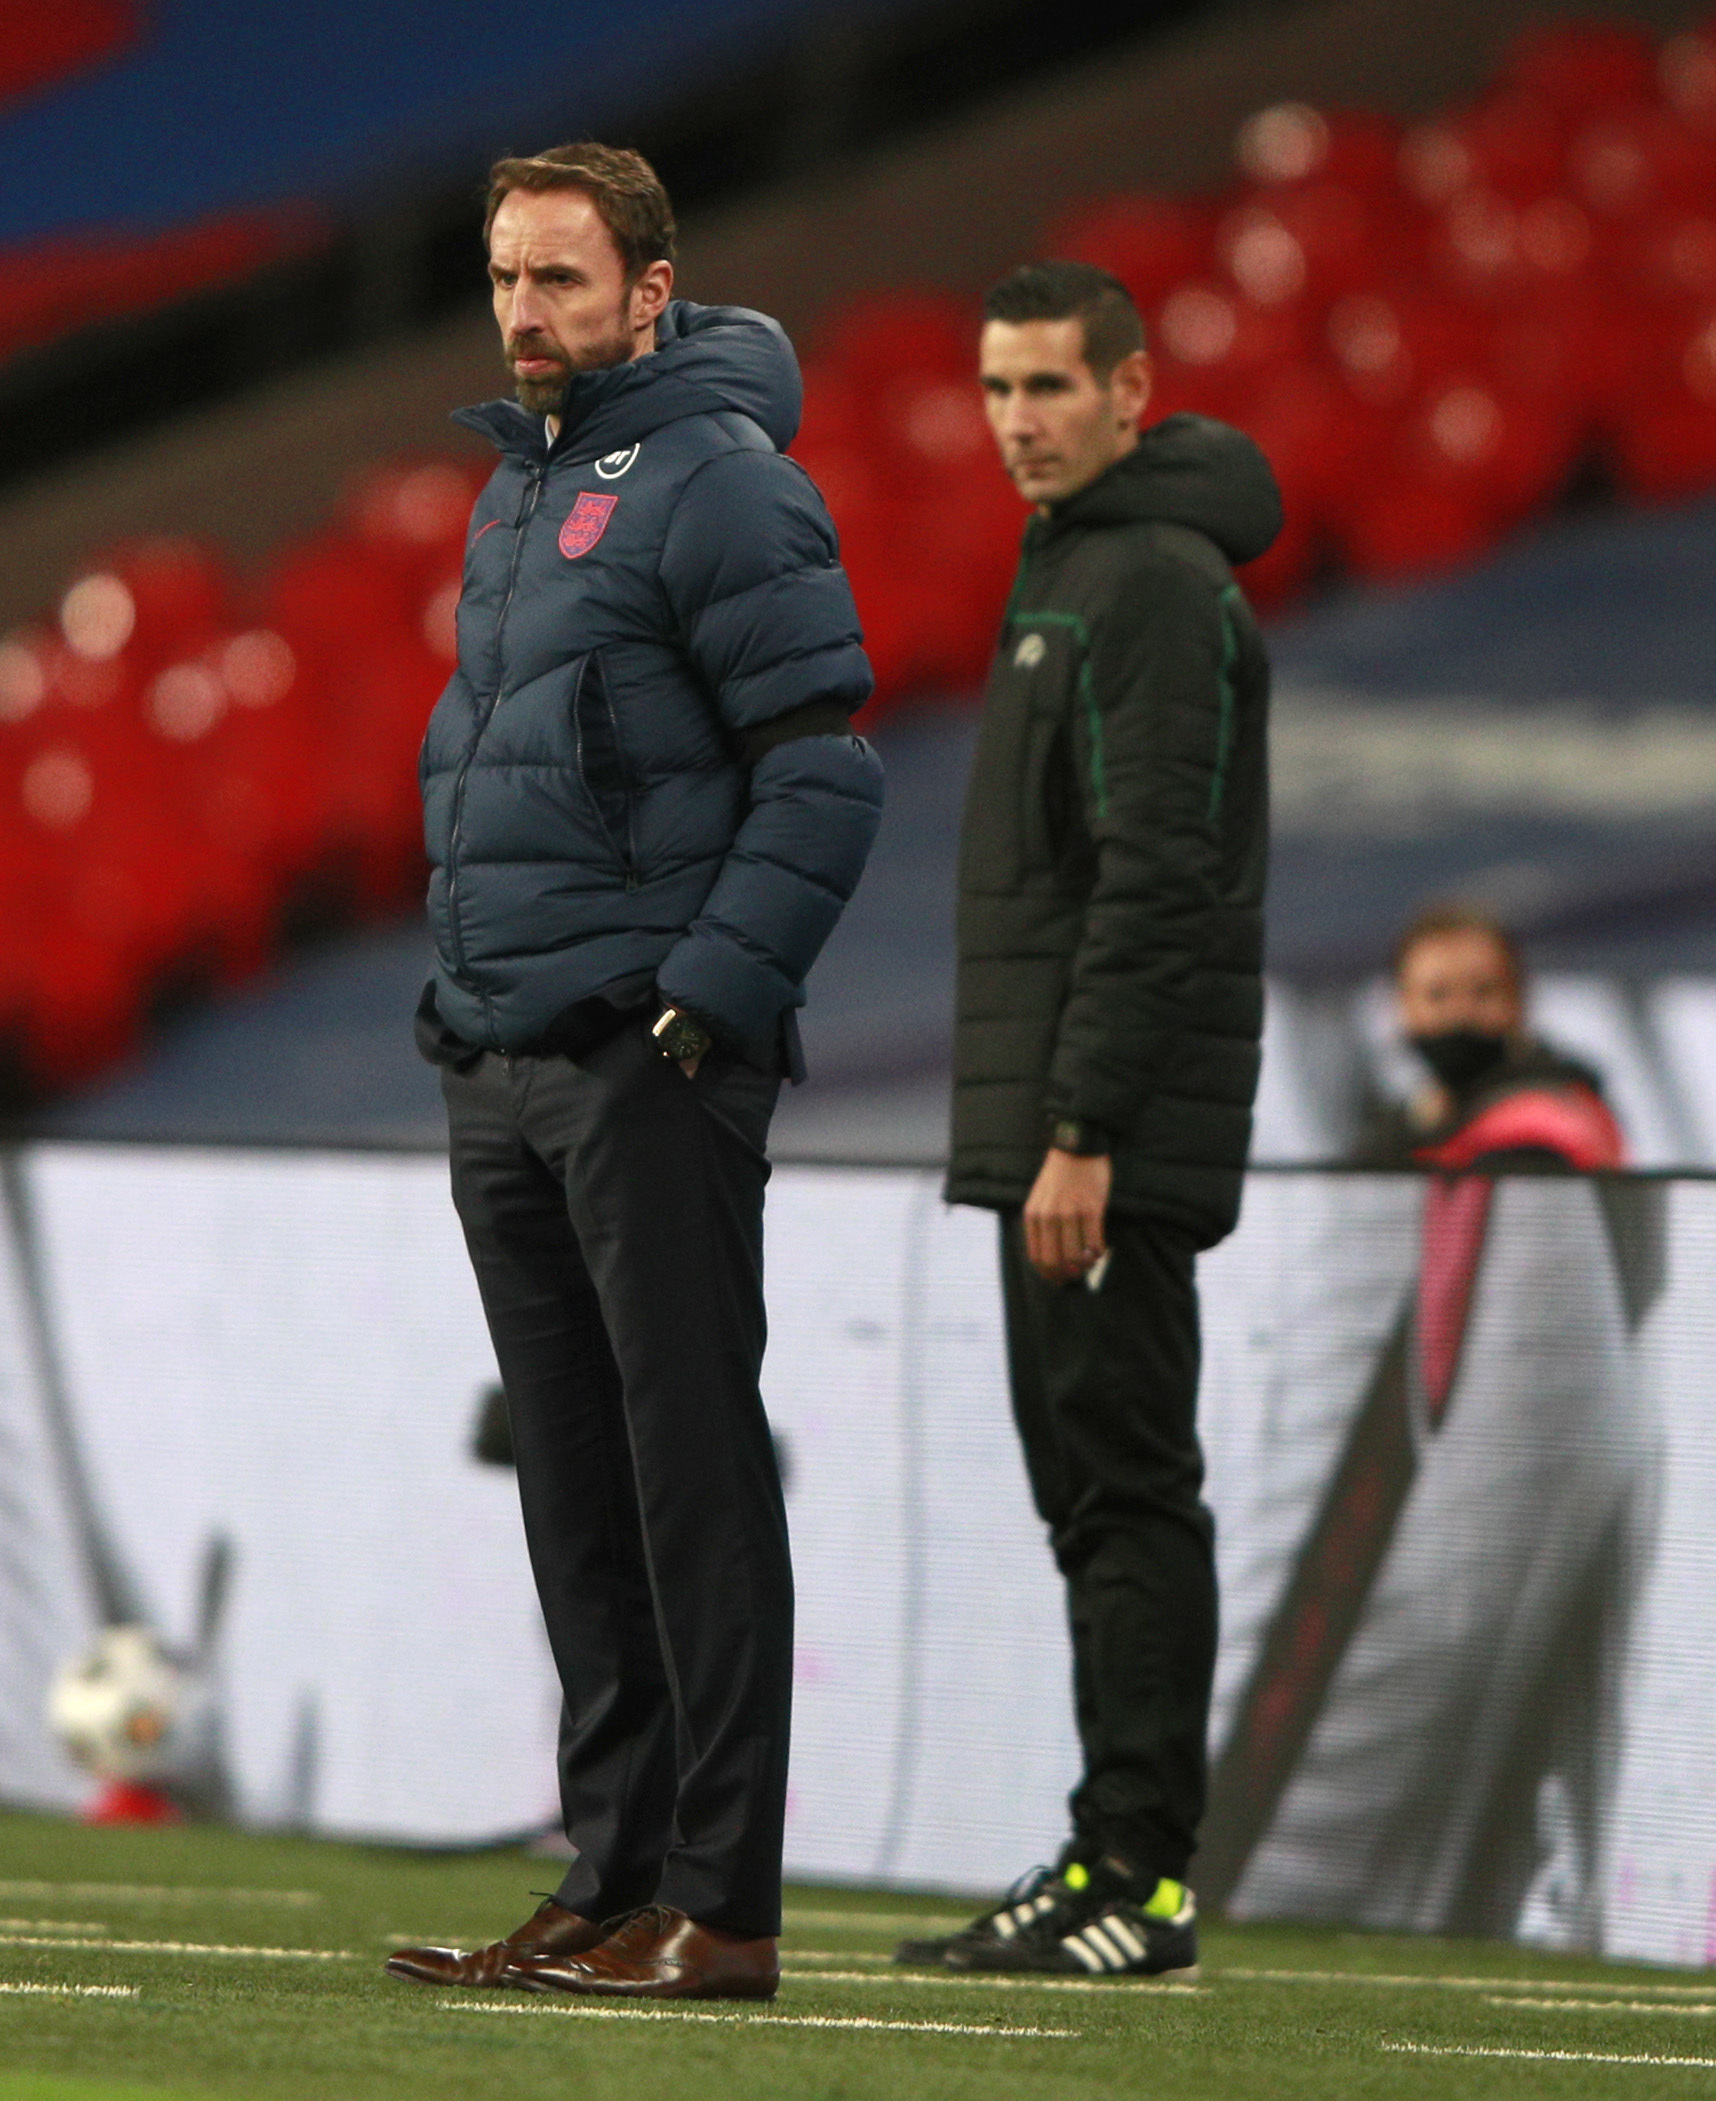 England manager Gareth Southgate (left) on the touchline during the UEFA Nations League Group A2 match at Wembley Stadium, London. PA Photo. Picture date: Wednesday November 18, 2020. See PA story SOCCER England. Photo credit should read: Ian Walton/PA Wi